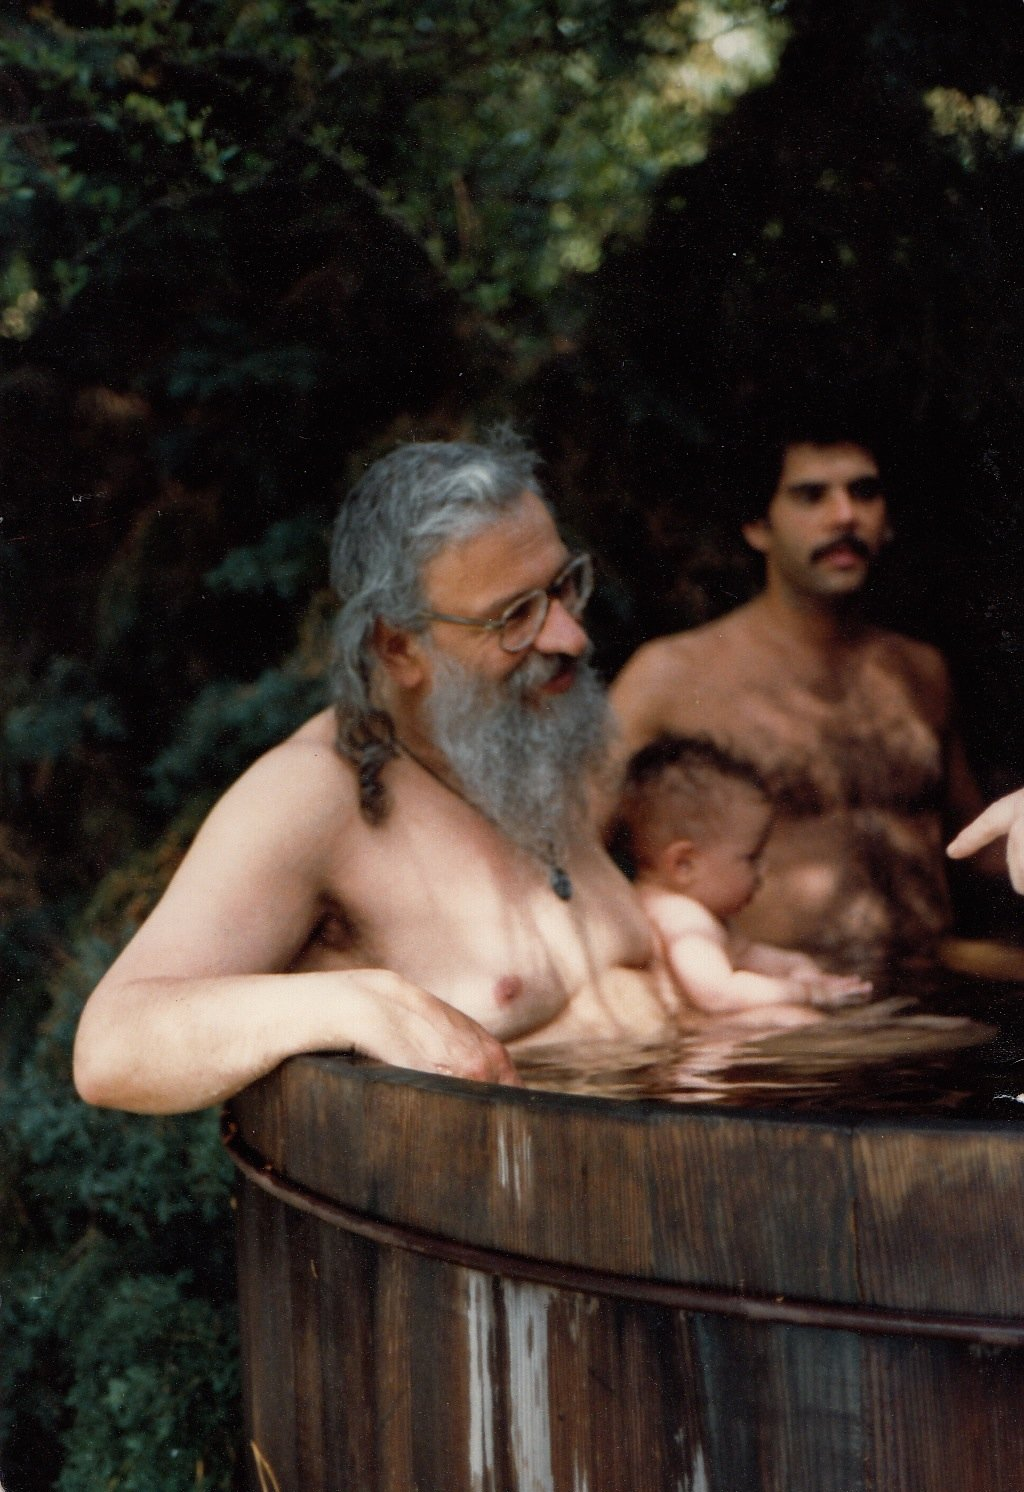 Rabbi Zalman Schachter-Shalomi in hot tub, ca. 1981.